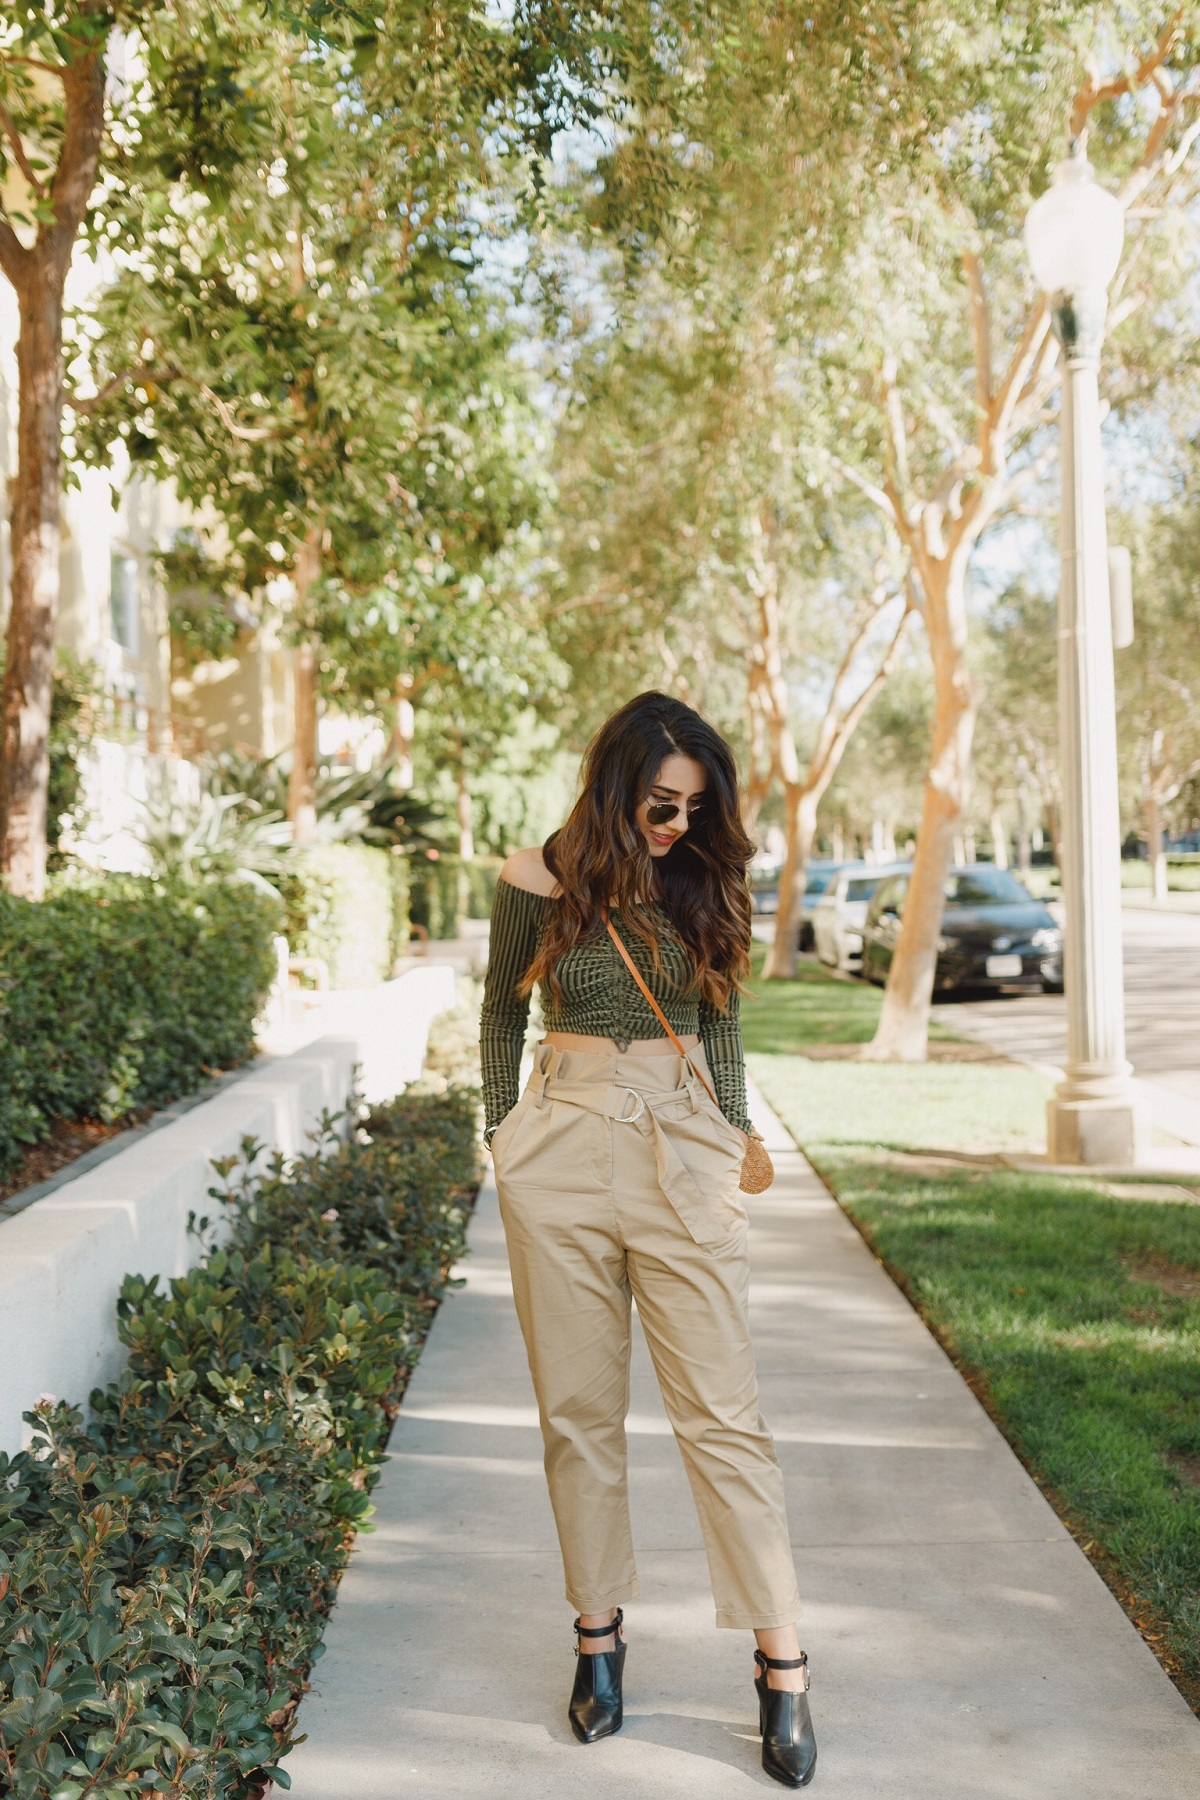 A Stylist's Guide To Wearing High-Waisted Pants